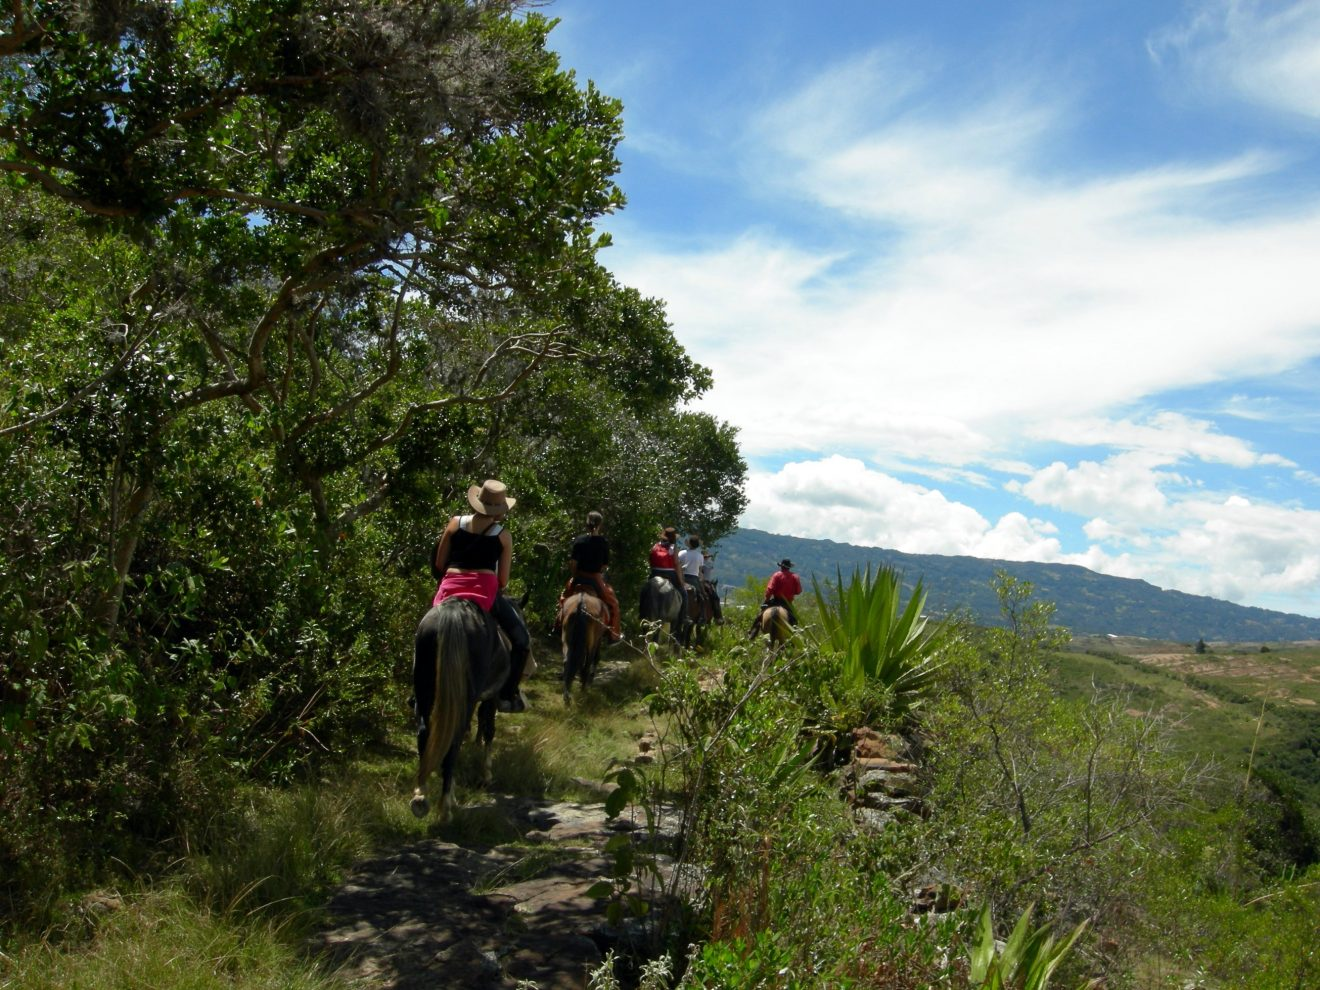 Horse Backriding at Villa de Leyva, Desert (4)